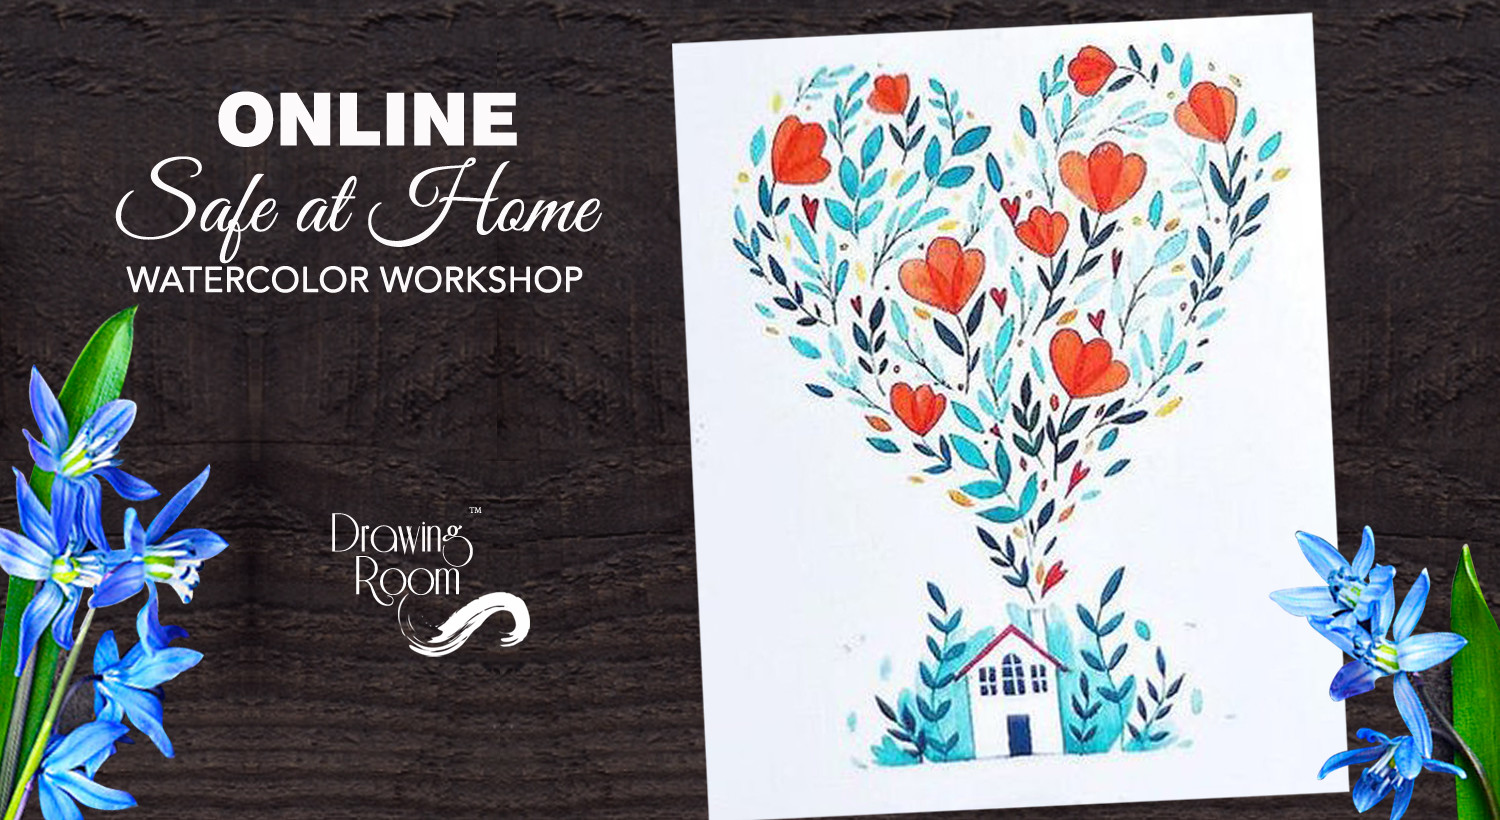 Book Online Safe At Home Watercolor Workshop By Drawing Room Apr 2020 Event Tickets Online Navi Mumbai Paytm Com